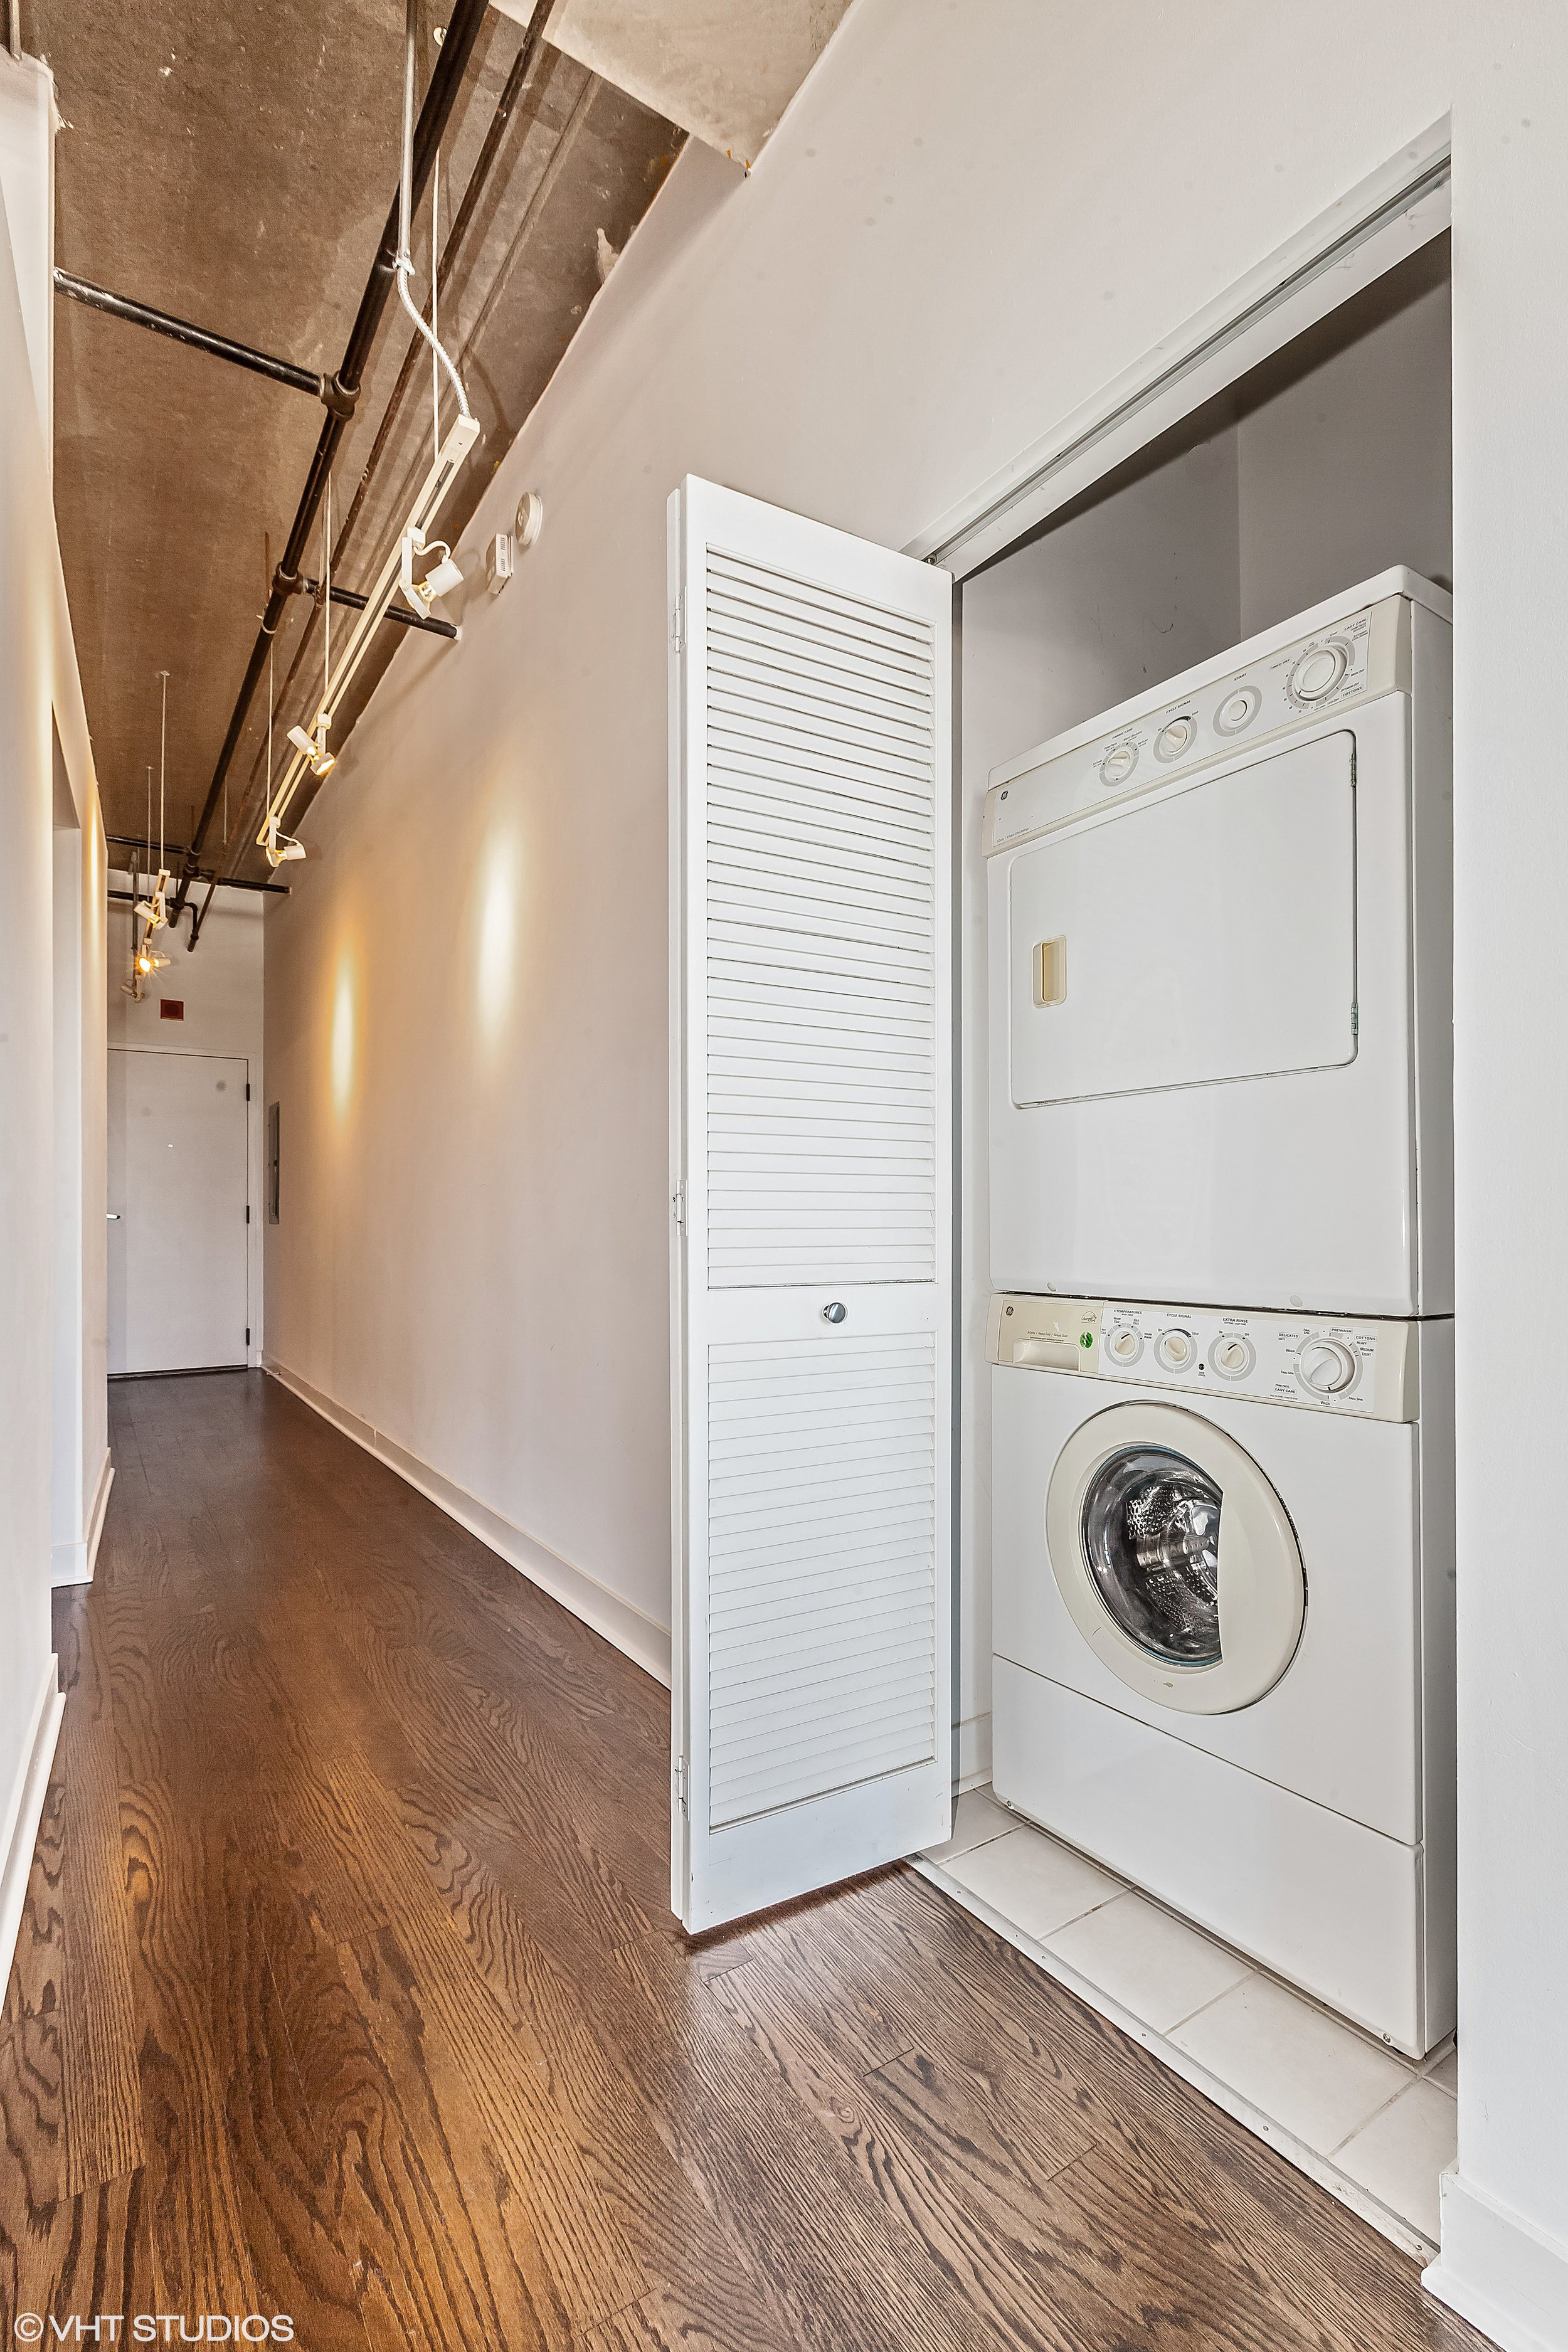 09_833West15ThPl_704_44_LaundryRoom_HiRes.jpg